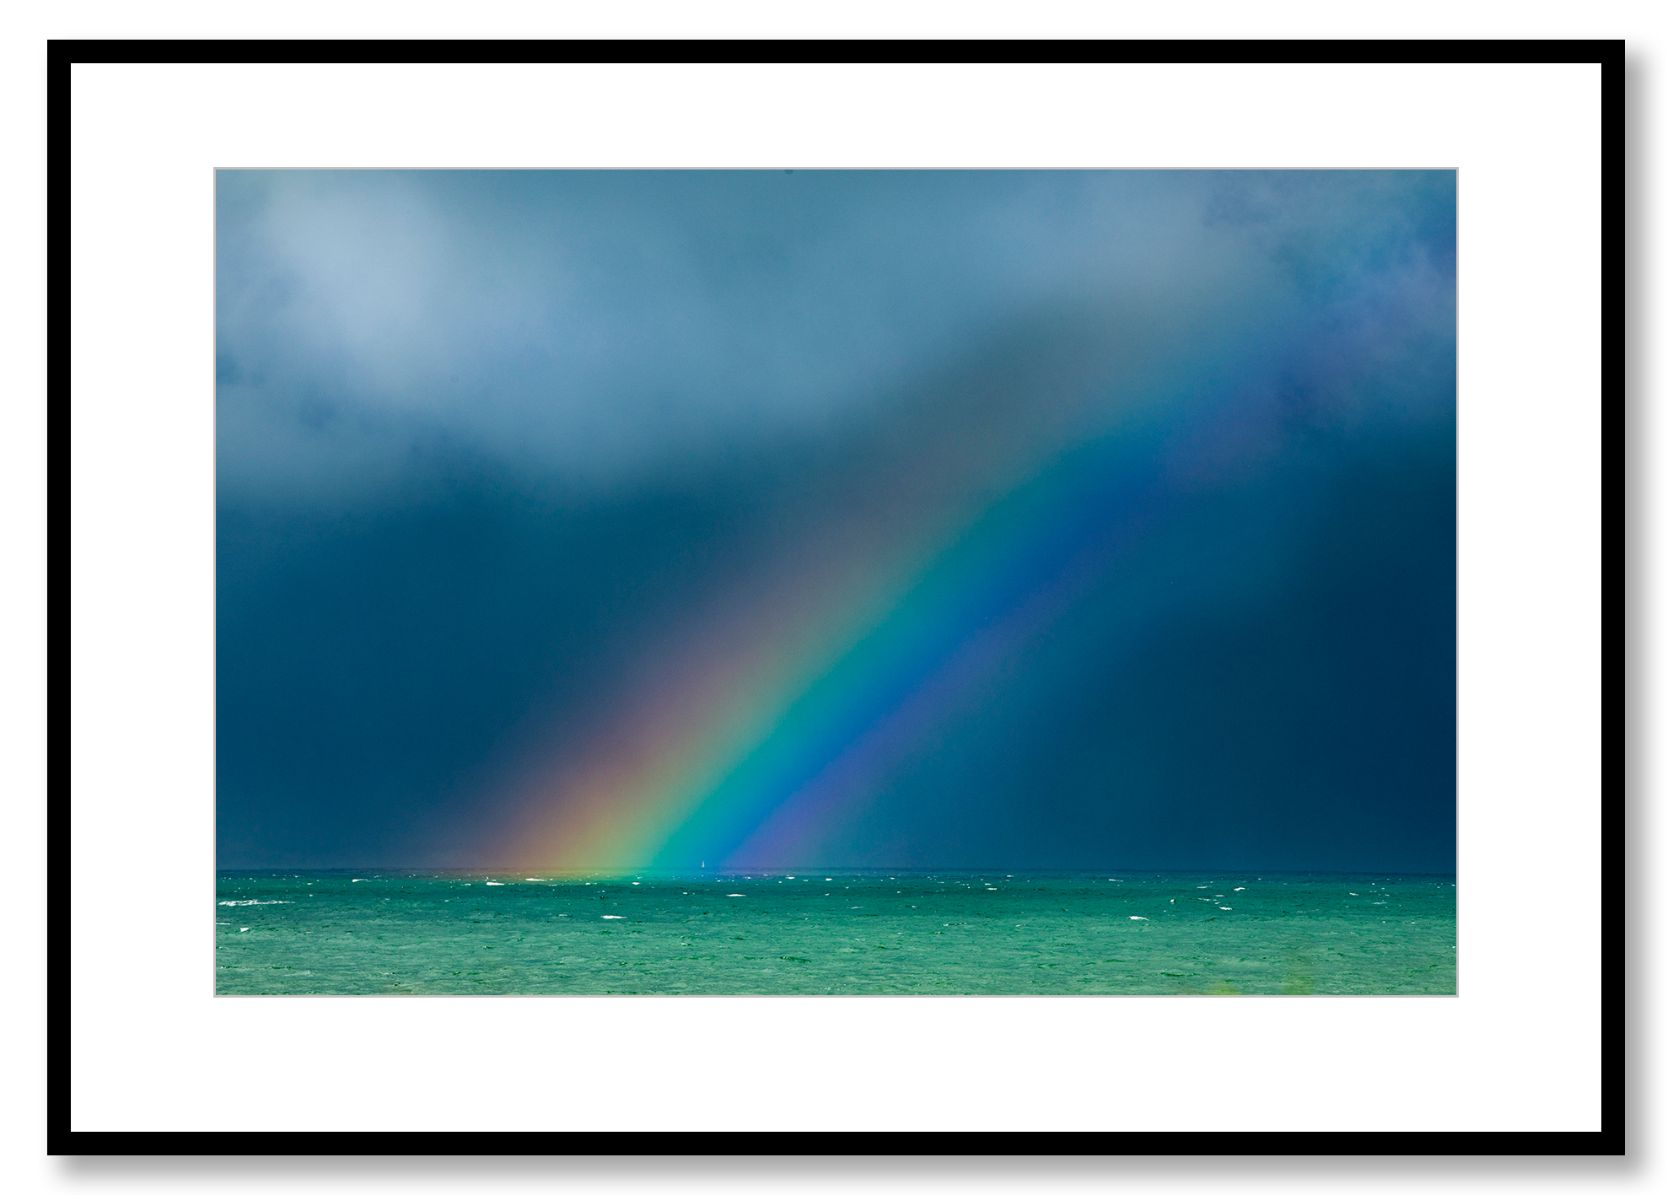 Rainbow. Photo by Fredrik Rege